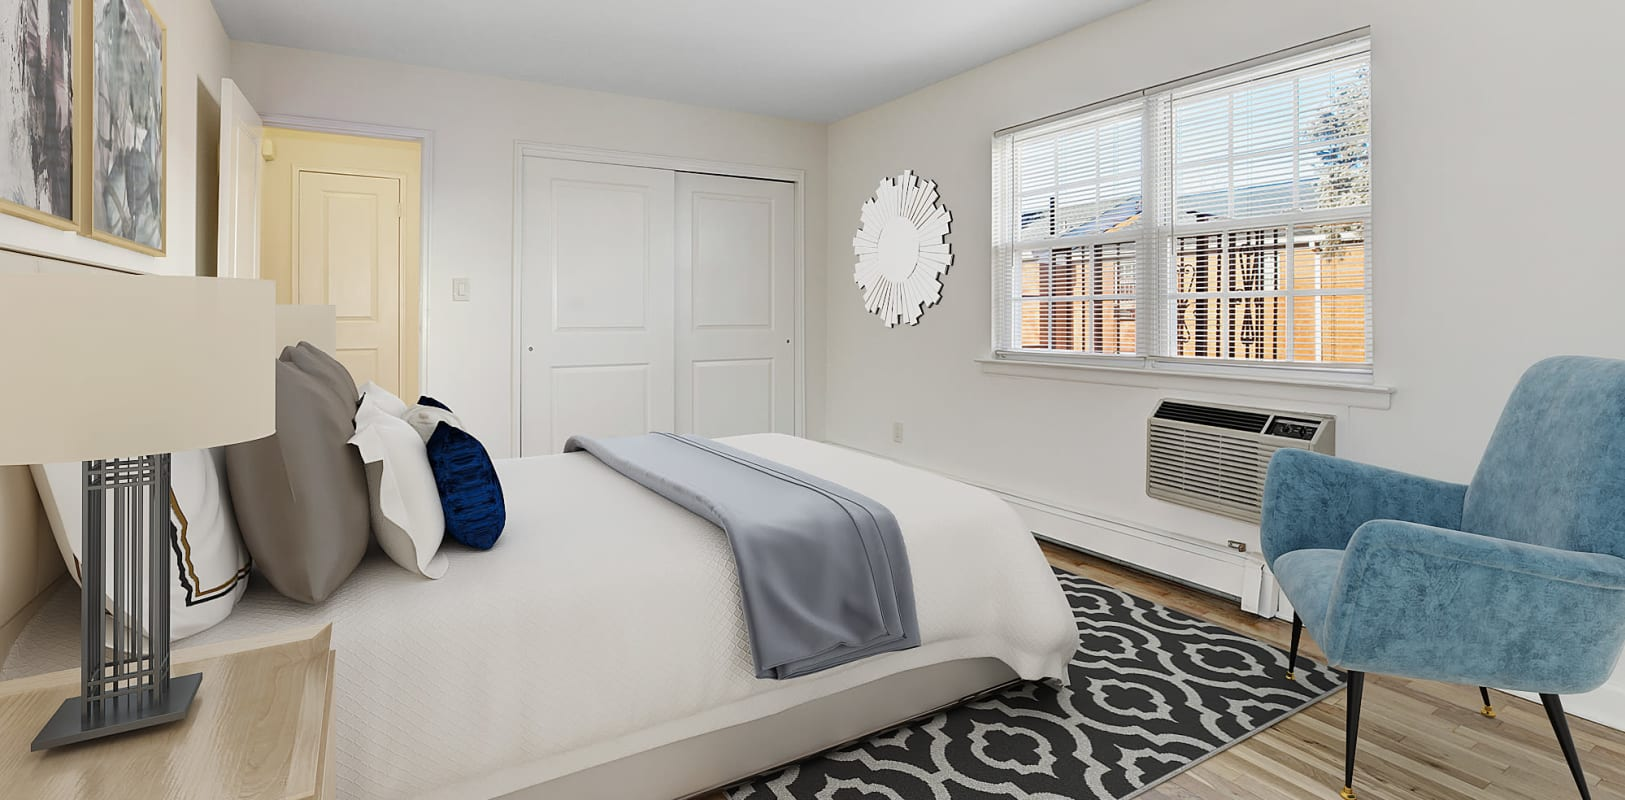 Bedroom with large closet and air conditioning unit at Park Lane Apartments in Little Falls, New Jersey